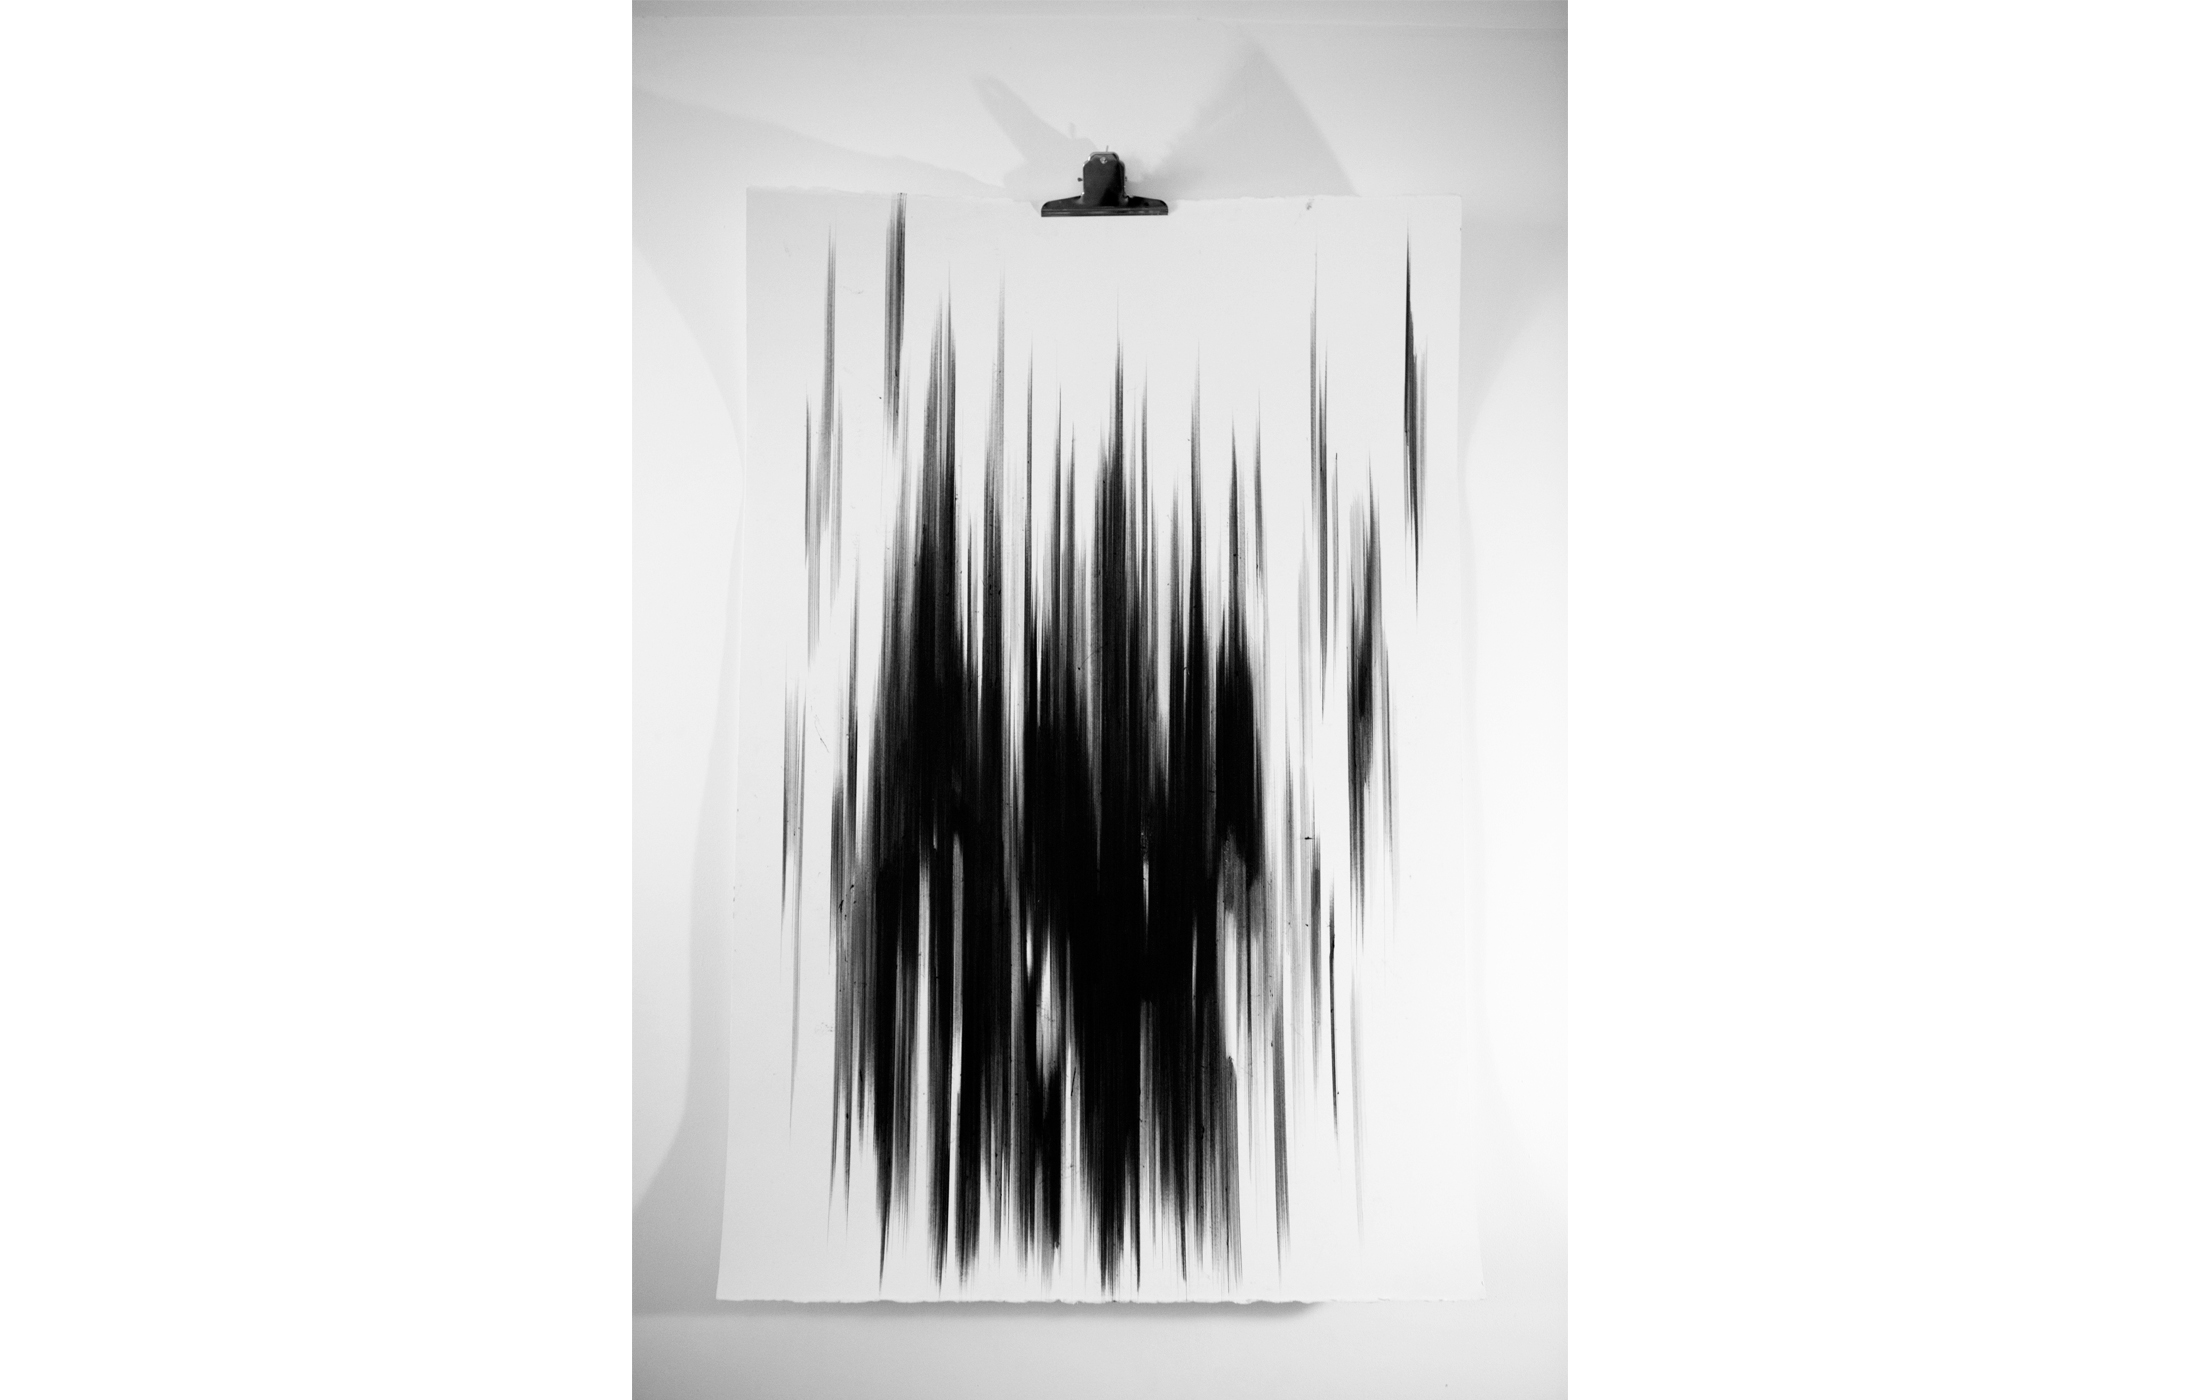 Agathe Toman Fated Marilyn Manson Art Contemporary Artist french paris biarritz drawing draw black white fine abstract bic velin arches dessin contemporain los angeles california